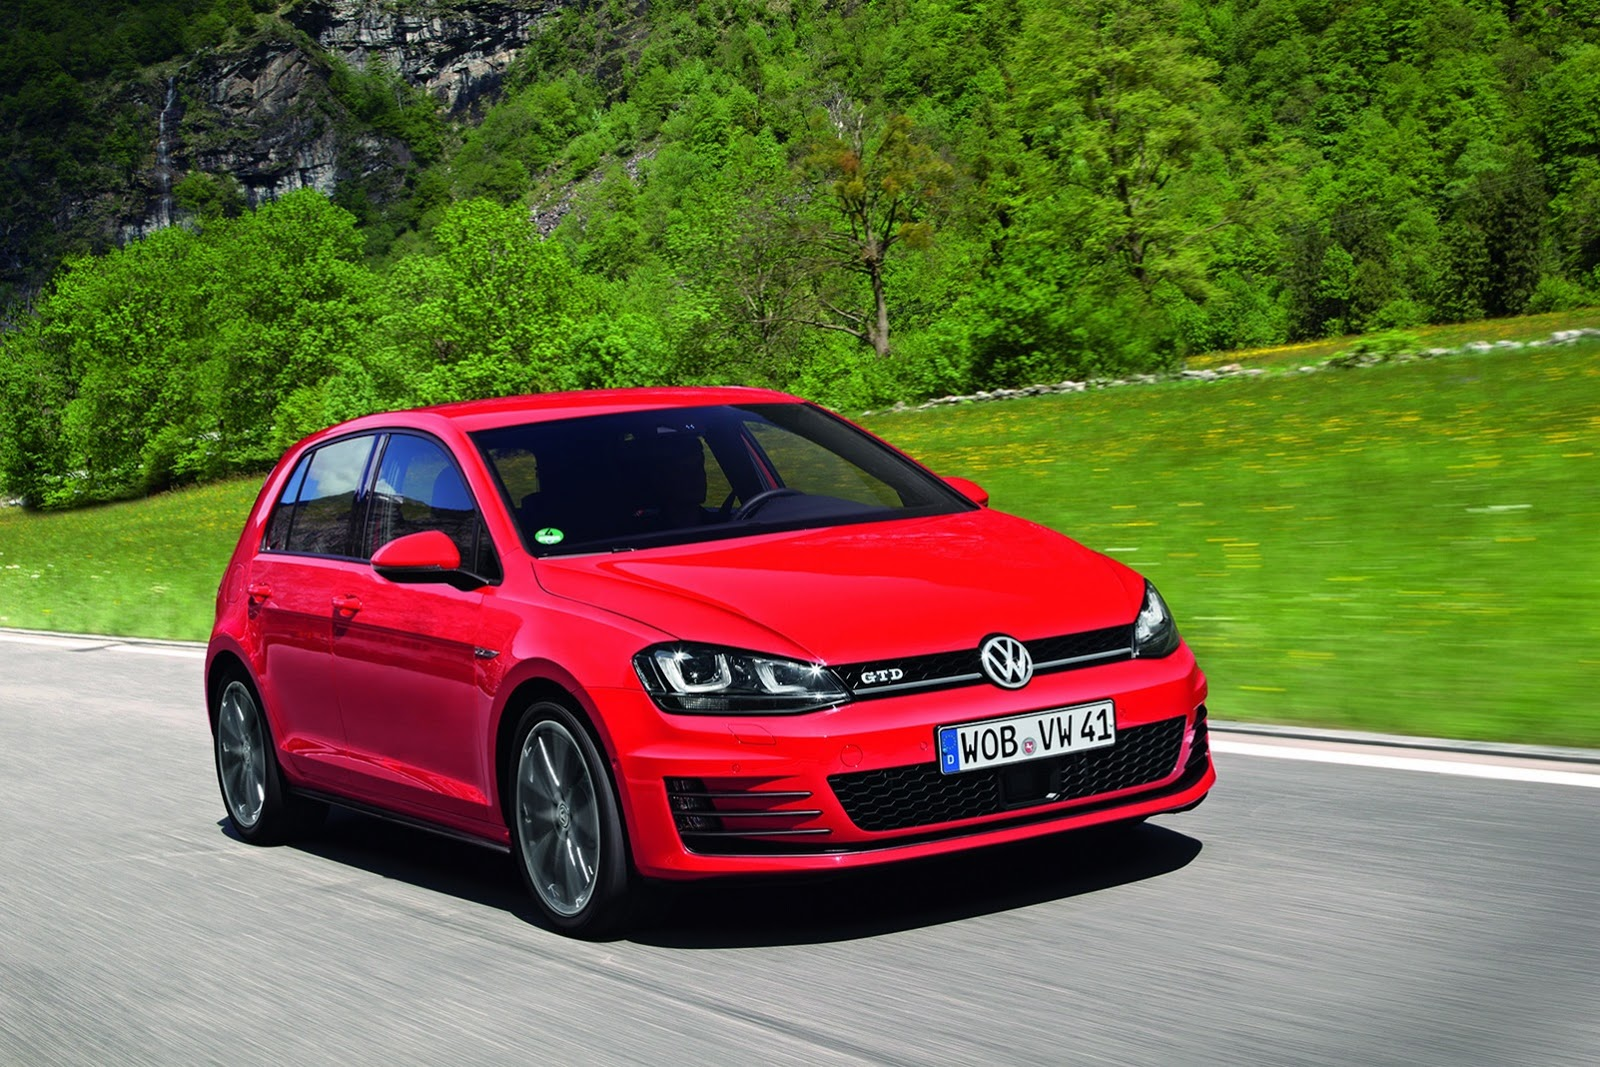 volkswagen cars news 2013 golf gtd official photos. Black Bedroom Furniture Sets. Home Design Ideas